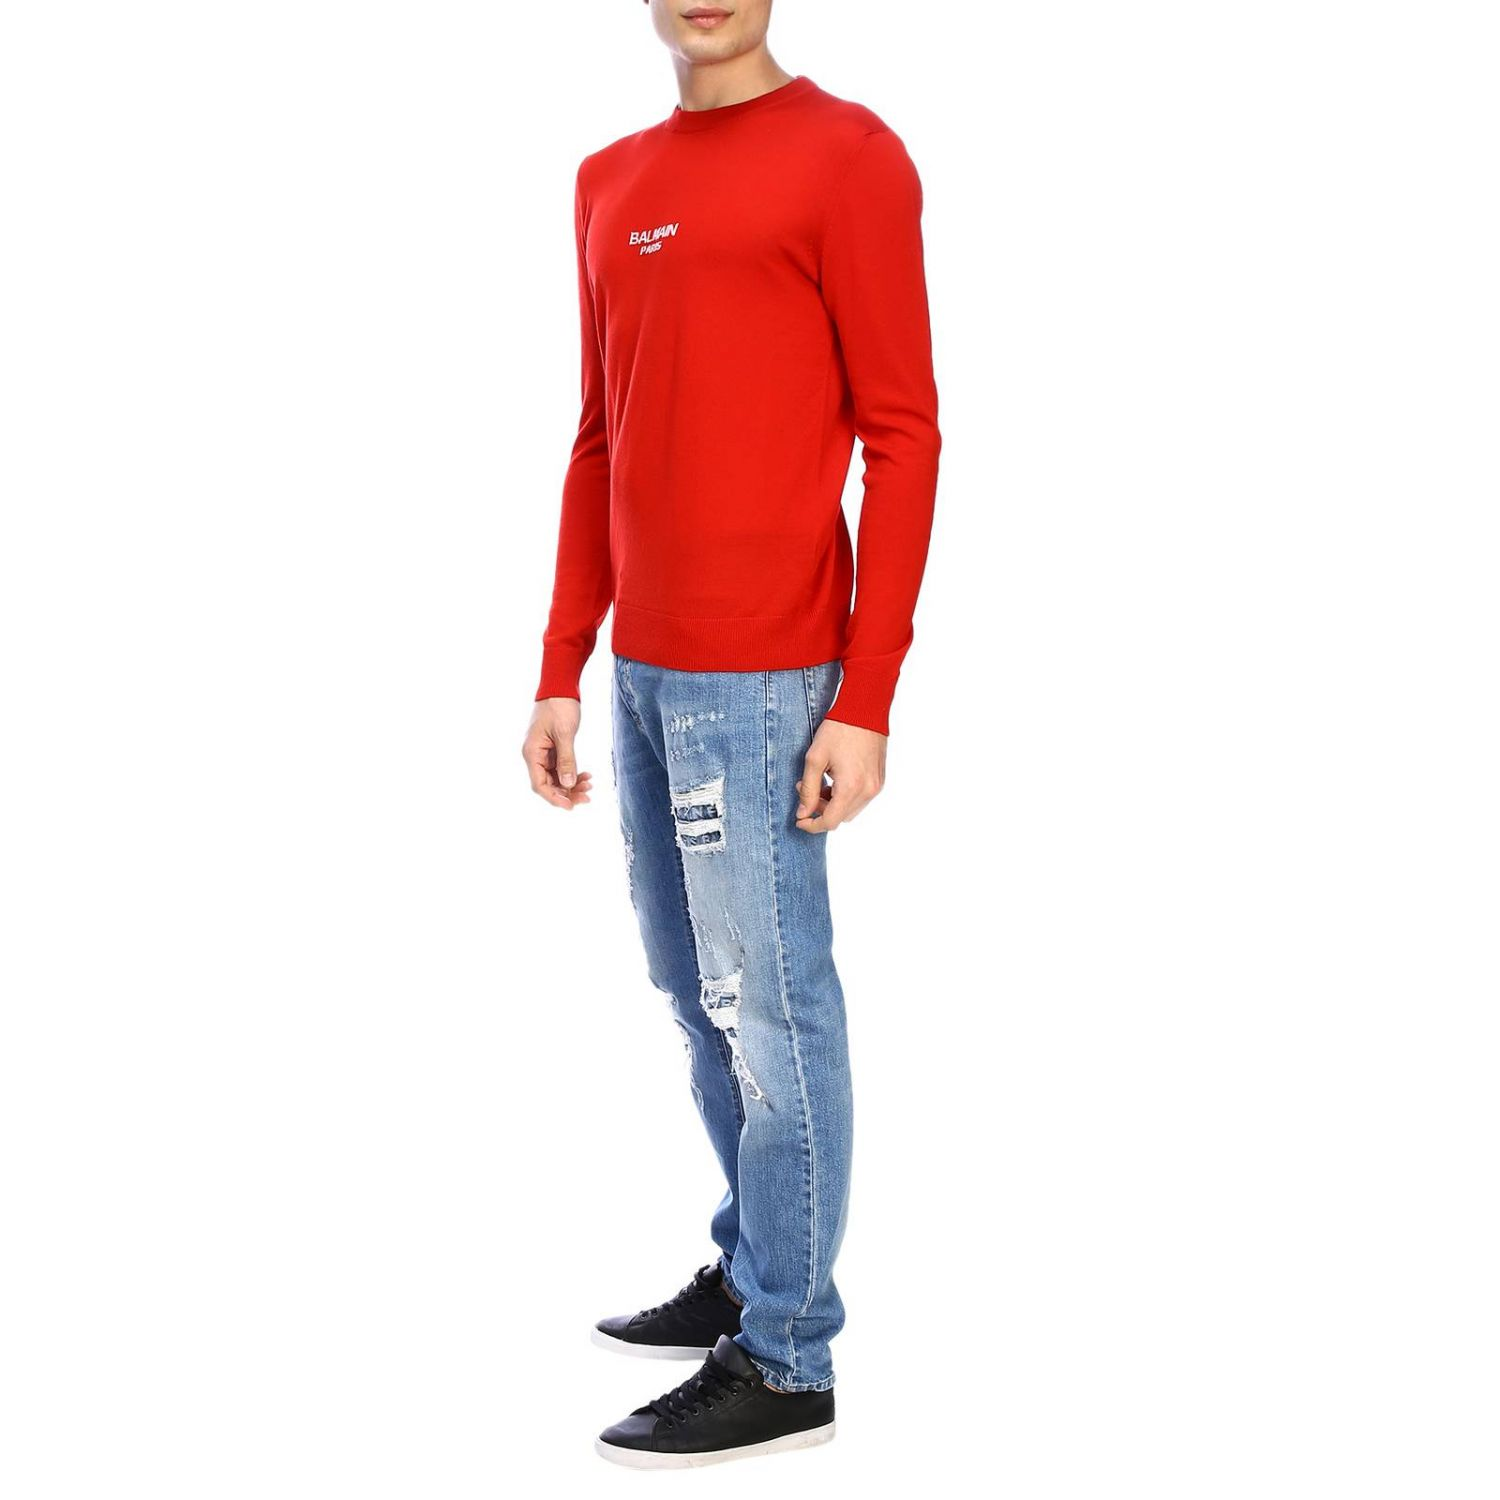 Jumper Balmain: Balmain crew-neck jumper with logo red 2